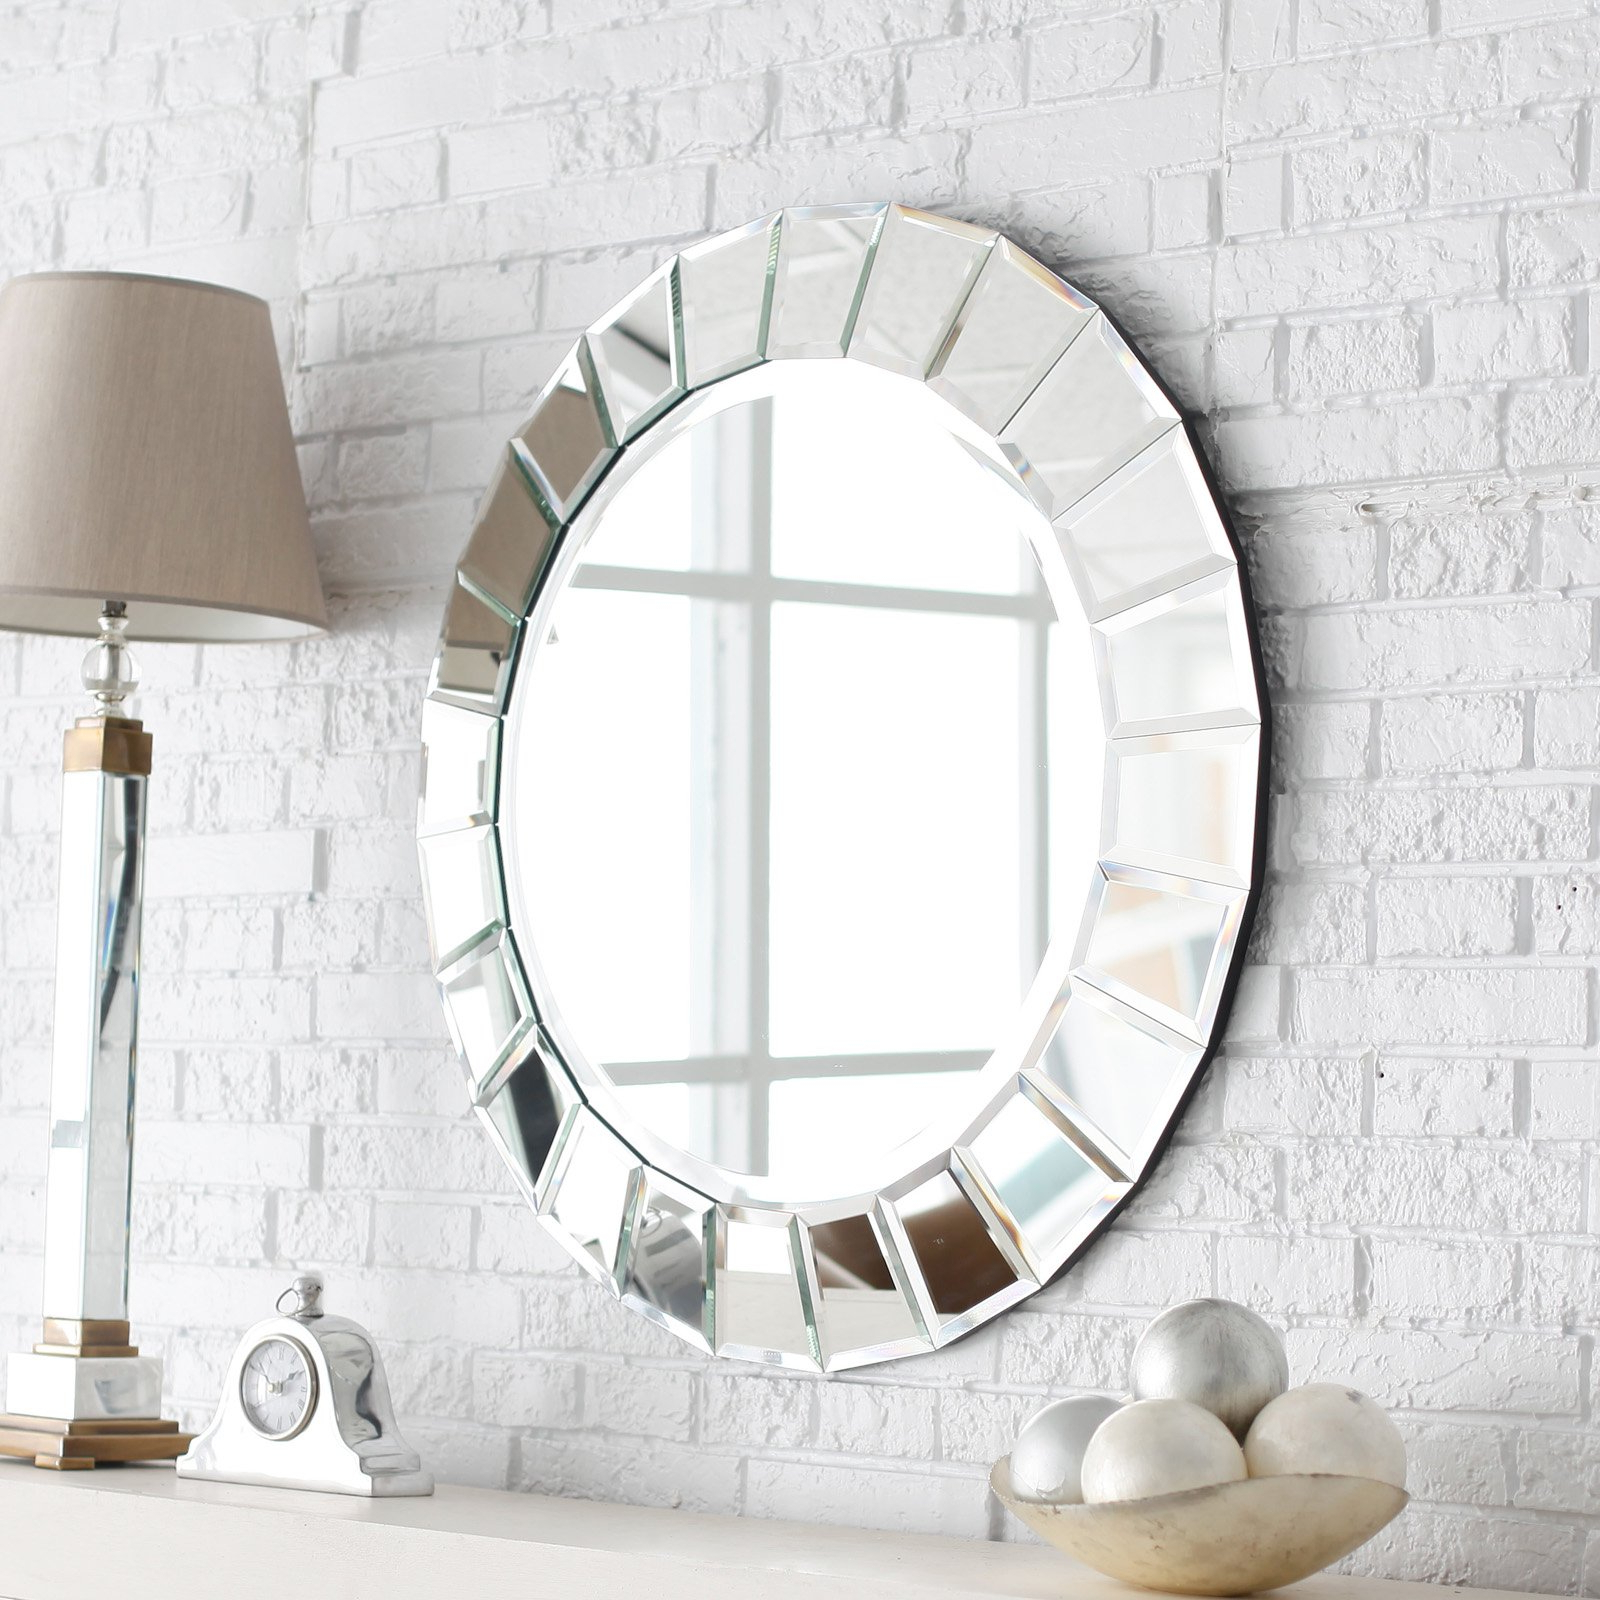 Ikea Round Wall Mirrors Regarding Fashionable Interior Venetian Glass Mirrors Sale Mirror Antique Furniture Ikea (View 5 of 20)